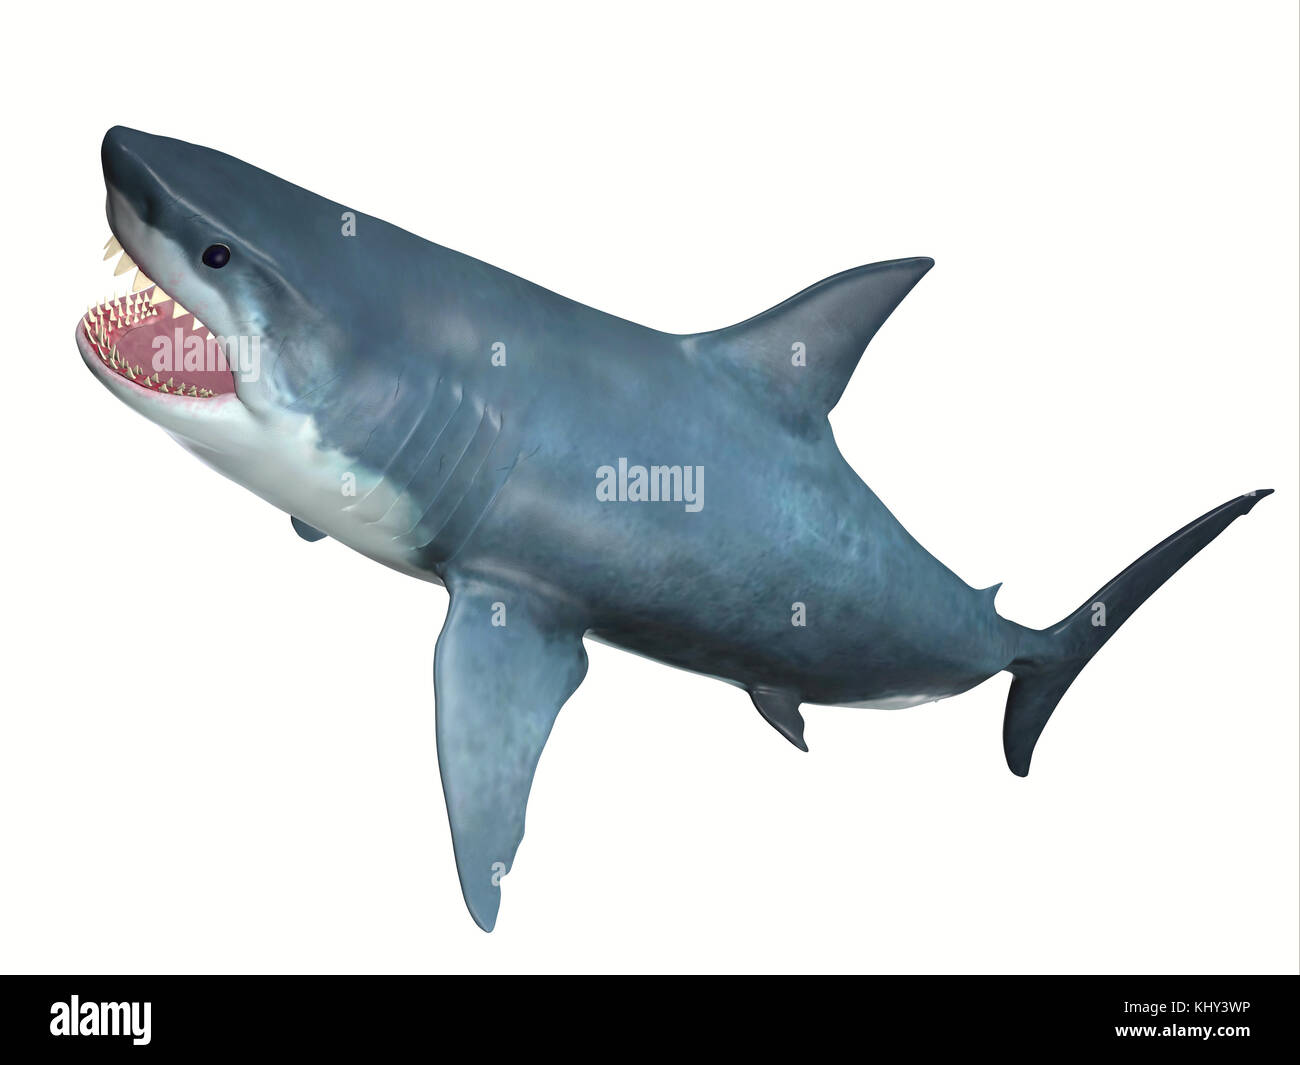 Carnivore Great White Shark - The Great White Shark is one of the largest predators in the ocean and inhabits temperate - Stock Image